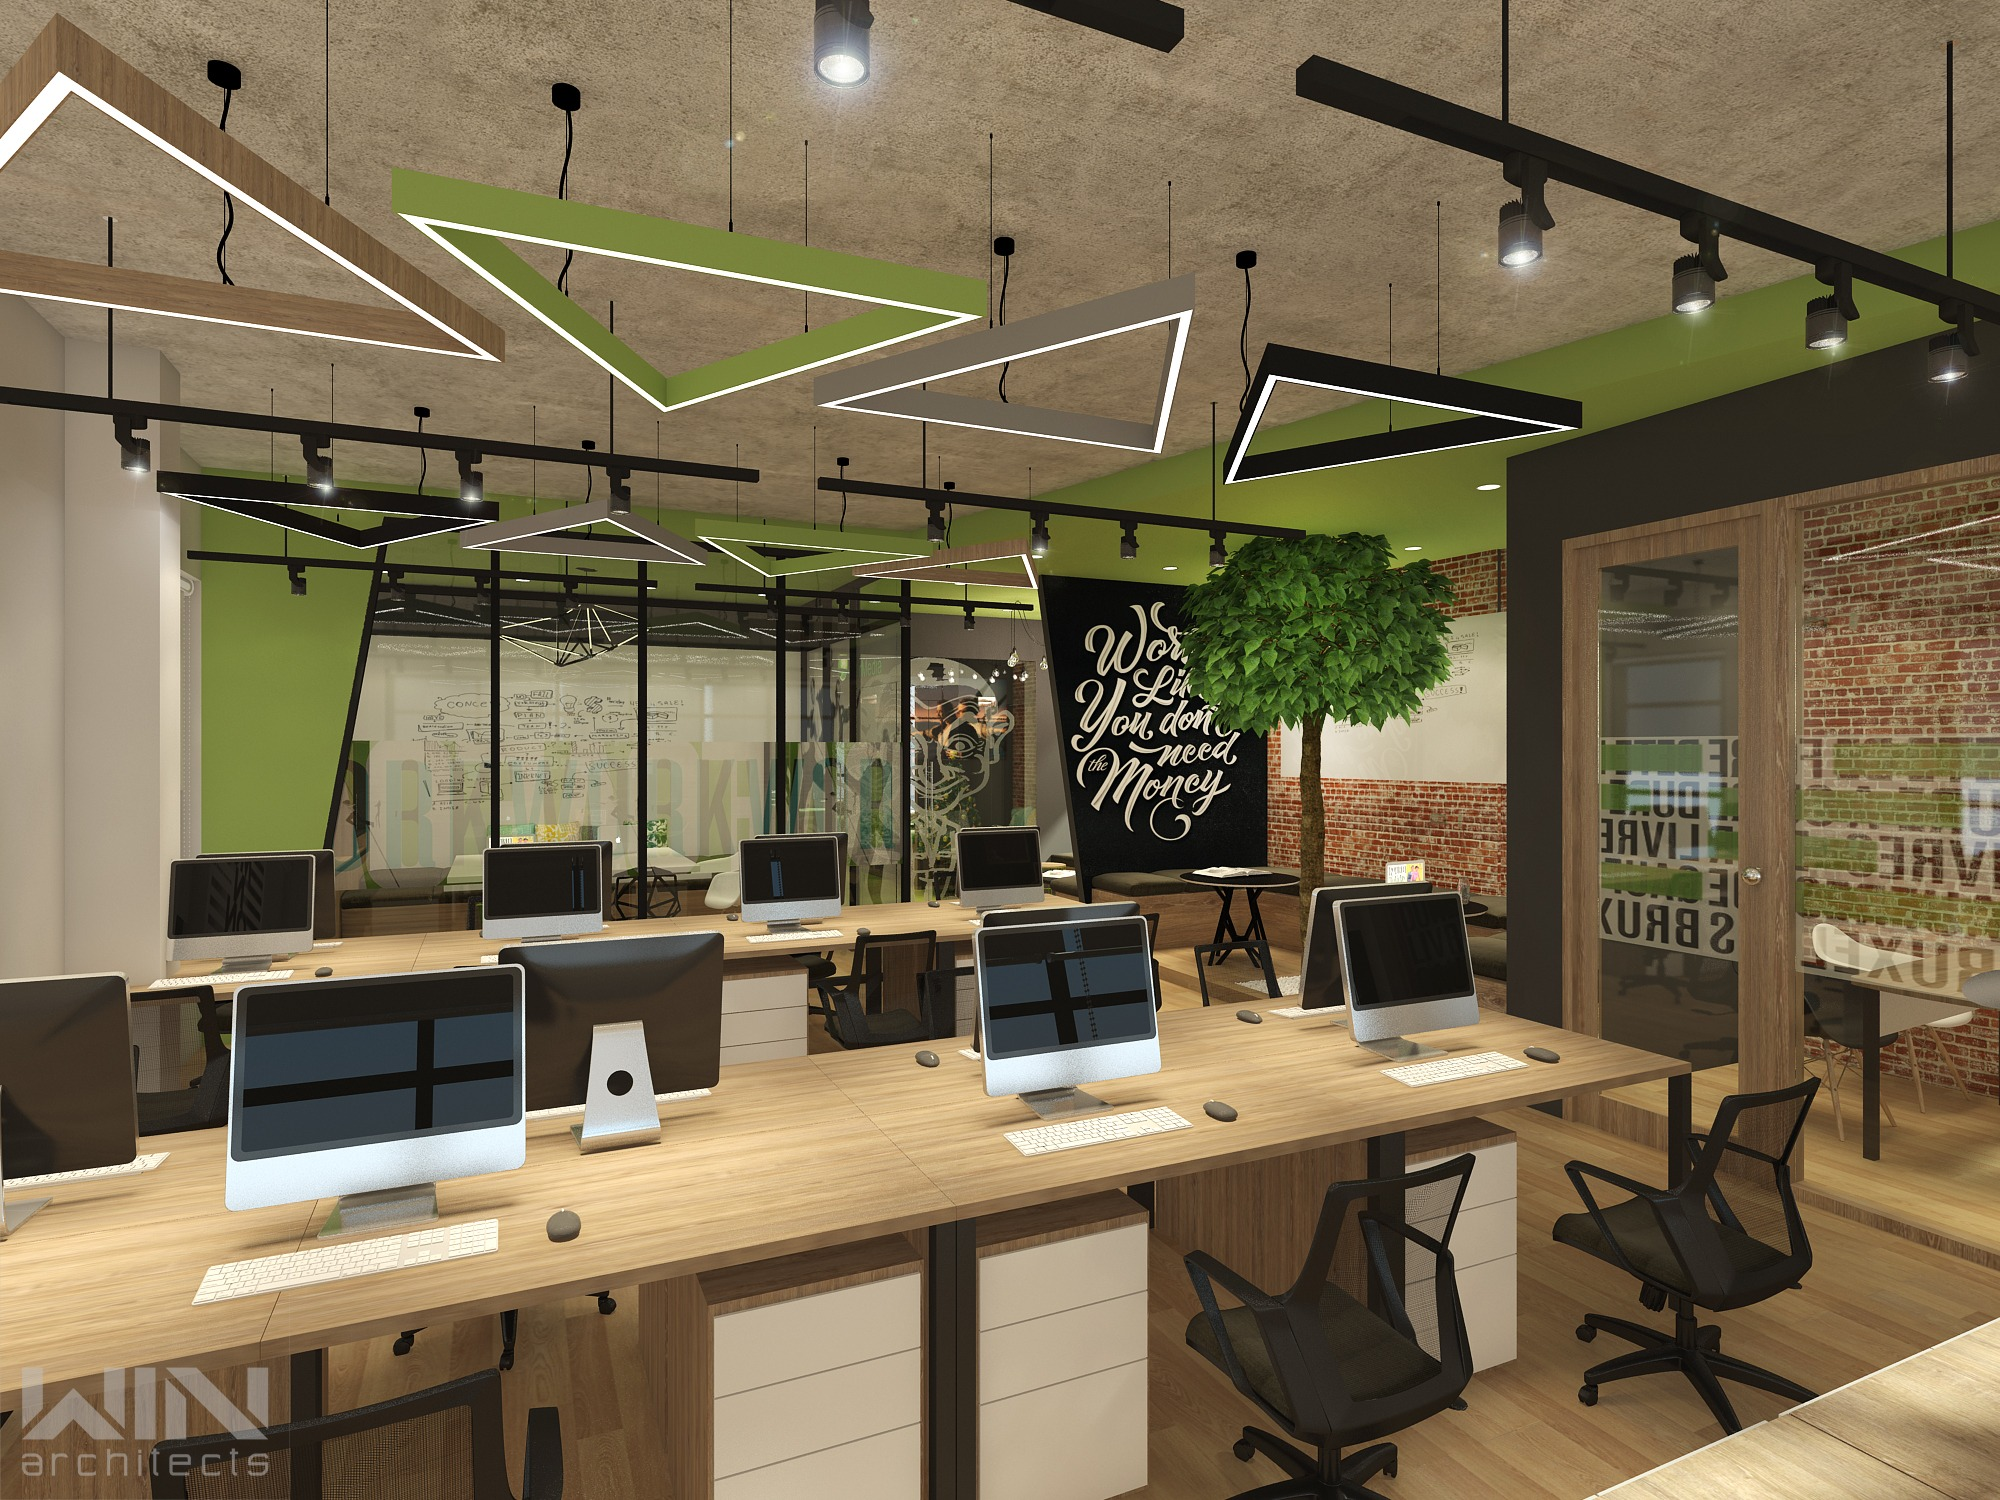 Star Media office | F 3, 202 Ly Chinh Thang st, D.3, HCMC | 260m²